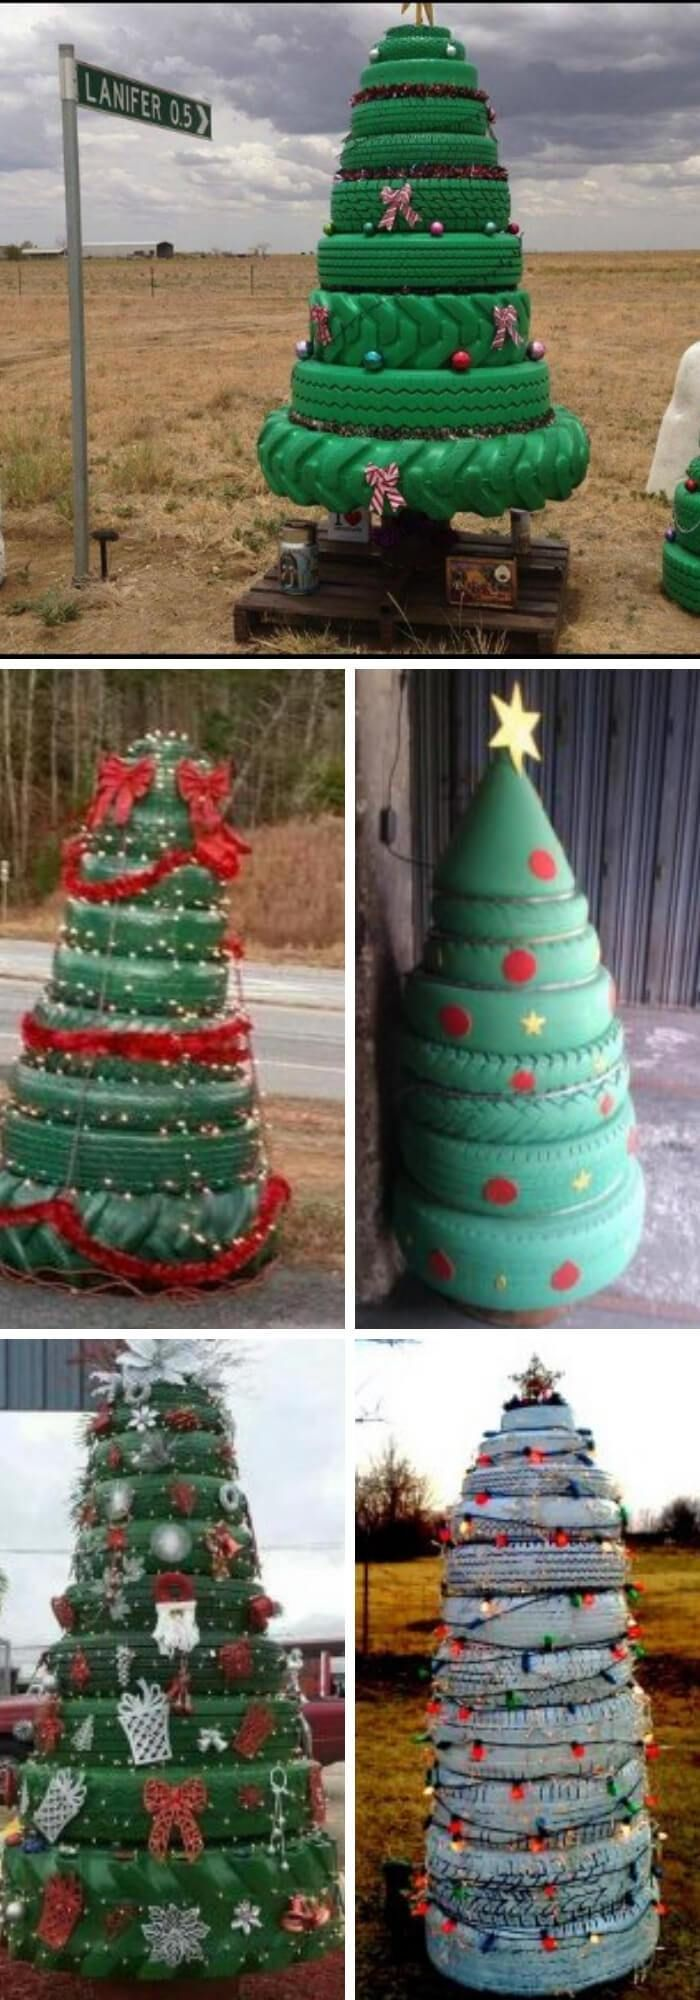 13 Best Recycled Tire Christmas Decoration Ideas For 2020